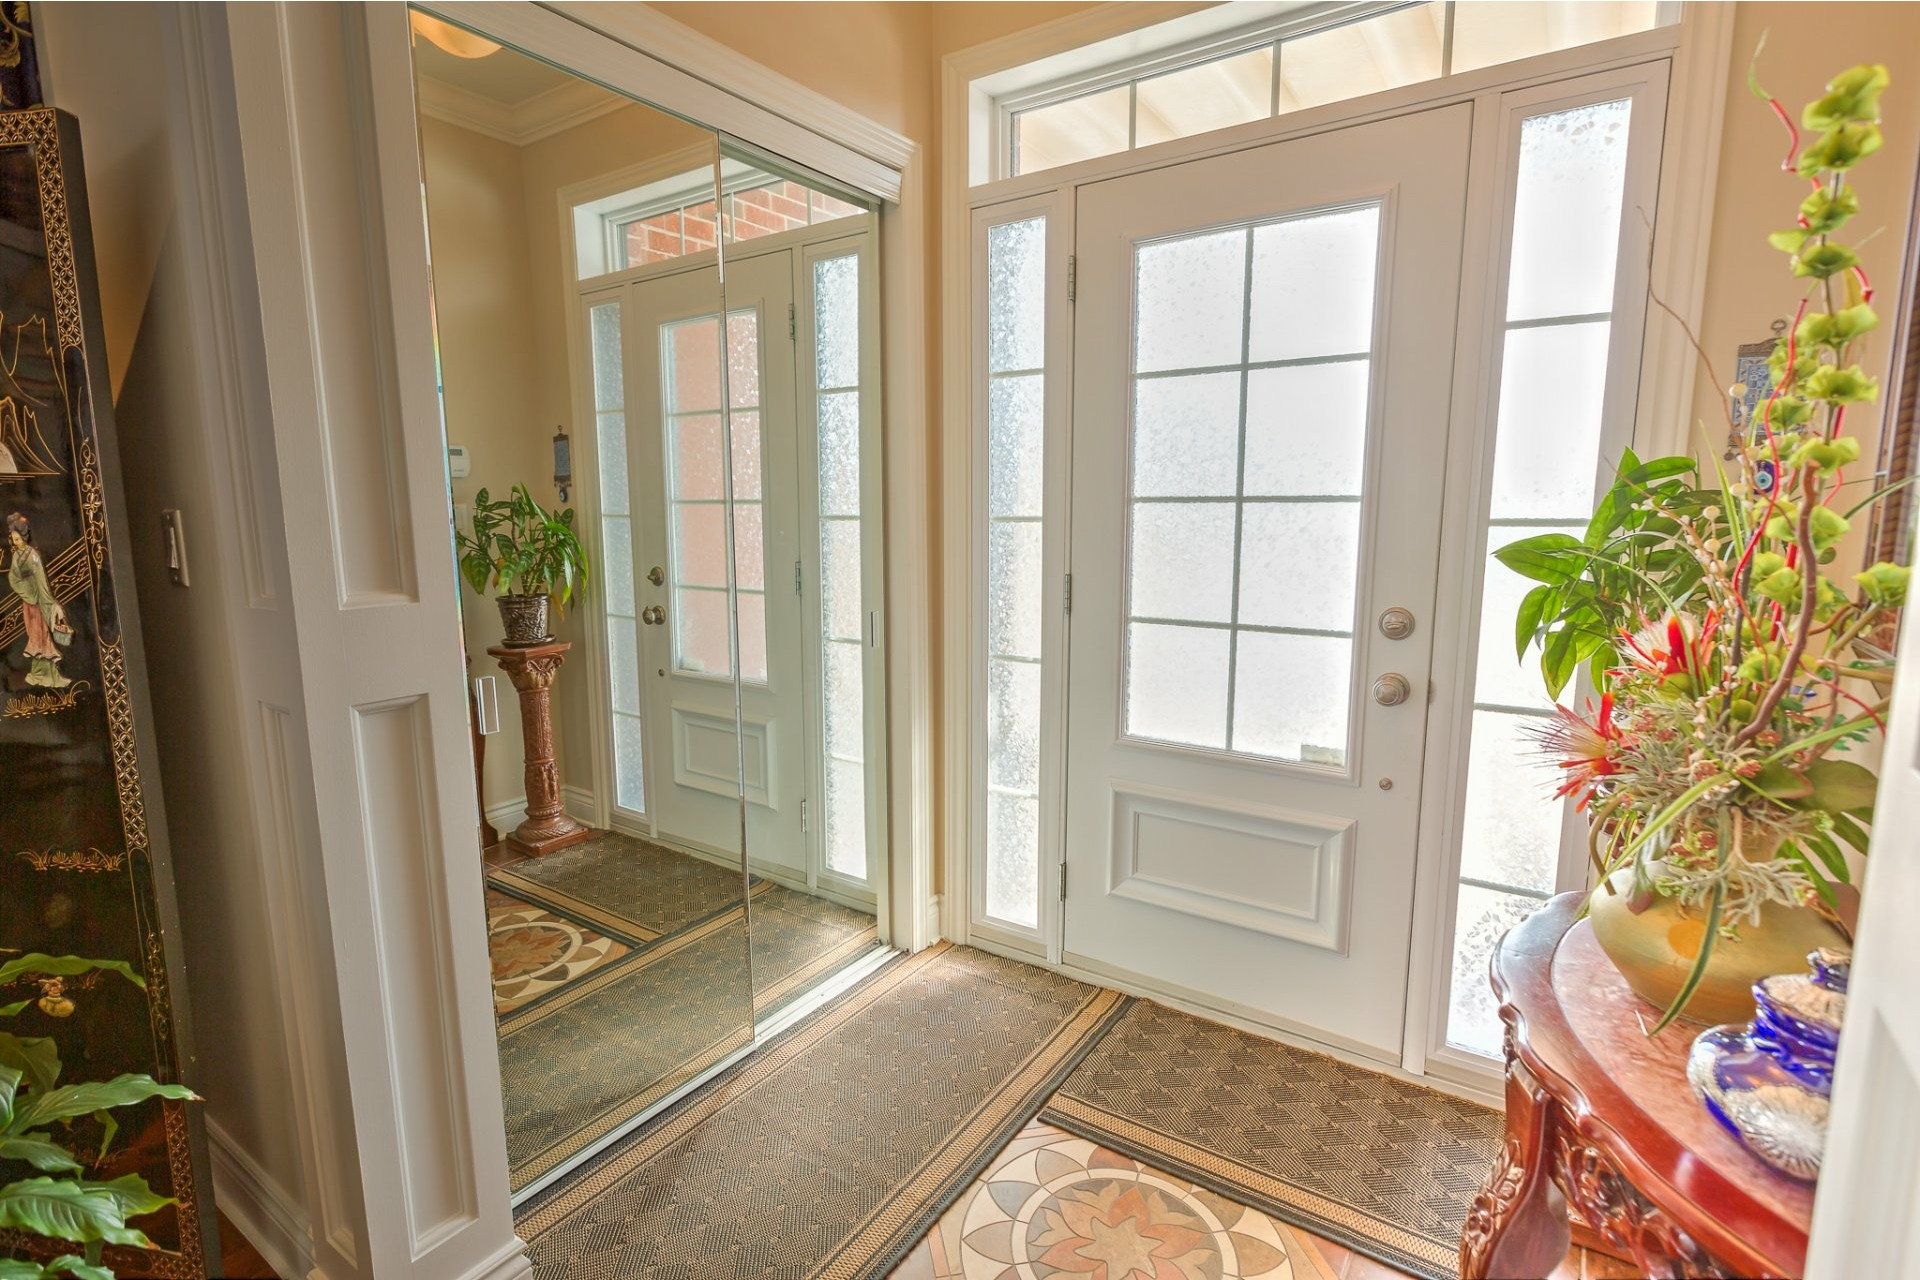 image 9 - Apartment For sale Brossard - 7 rooms